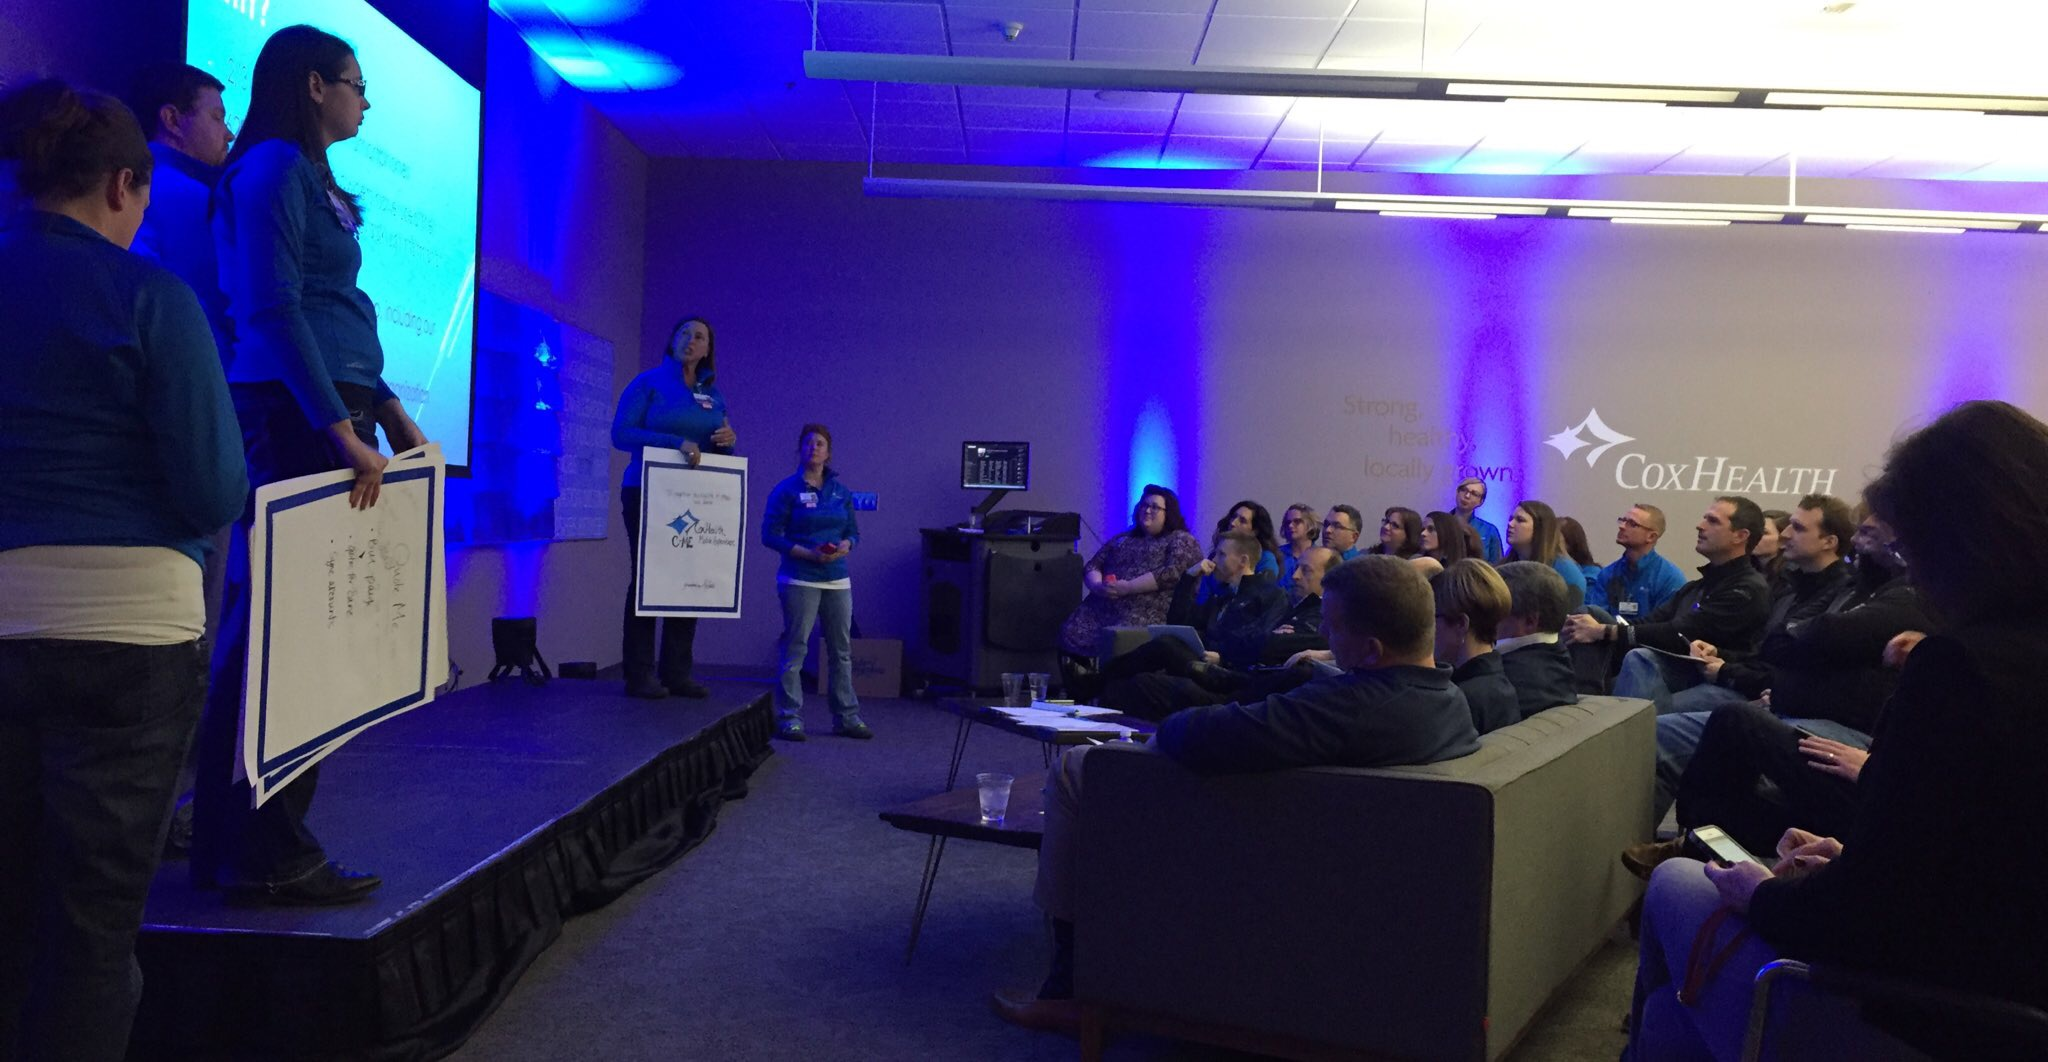 The eFactory Partners with CoxHealth on Second CoxHealth Innovation Accelerator